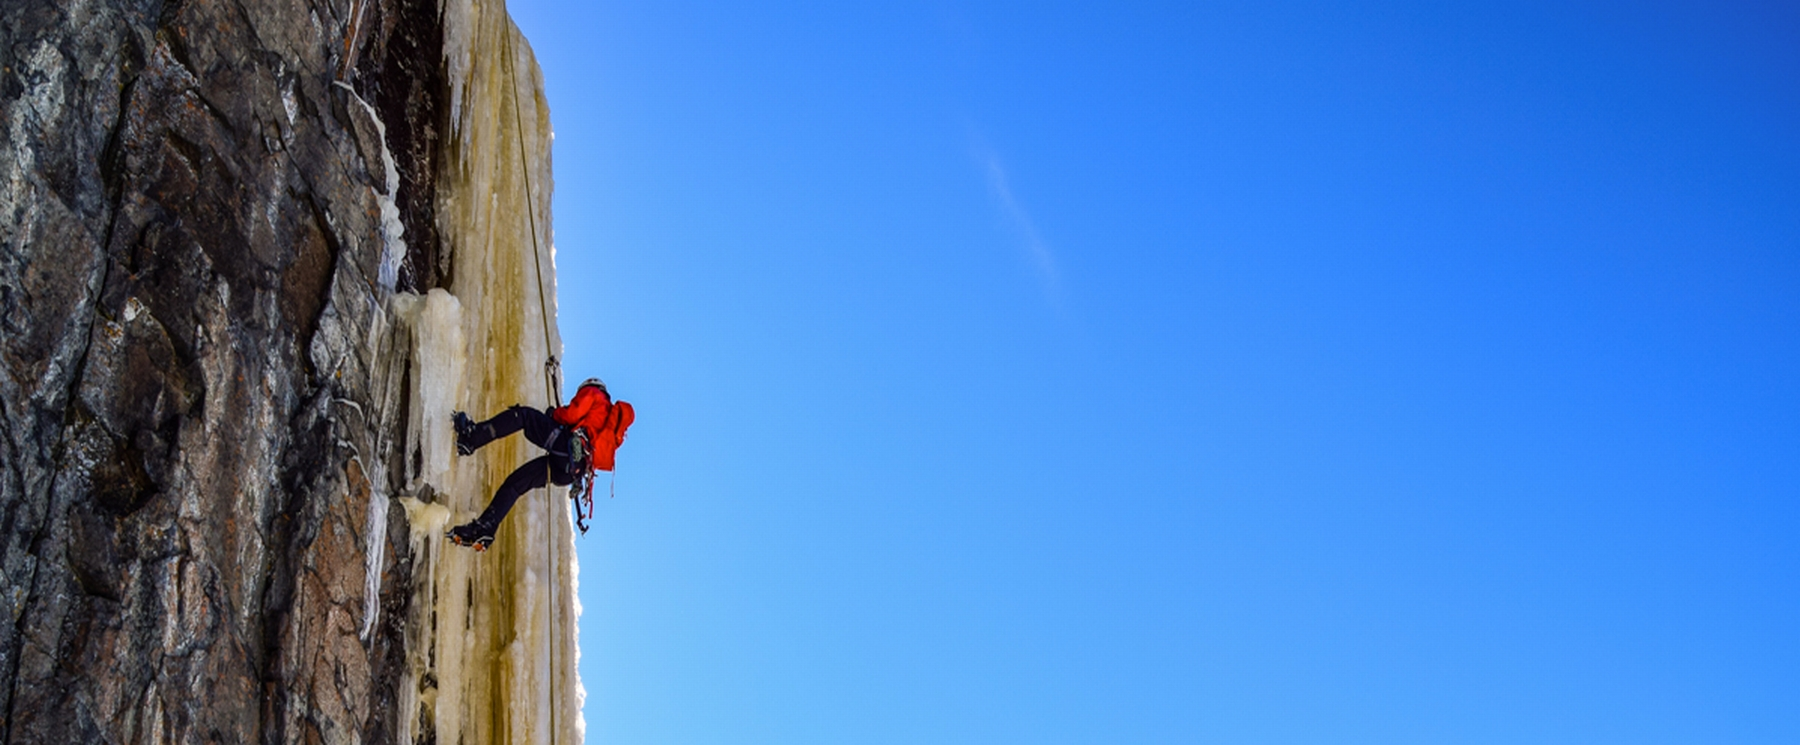 person rock climbing - photo credit Outdoor Skills and Thrills